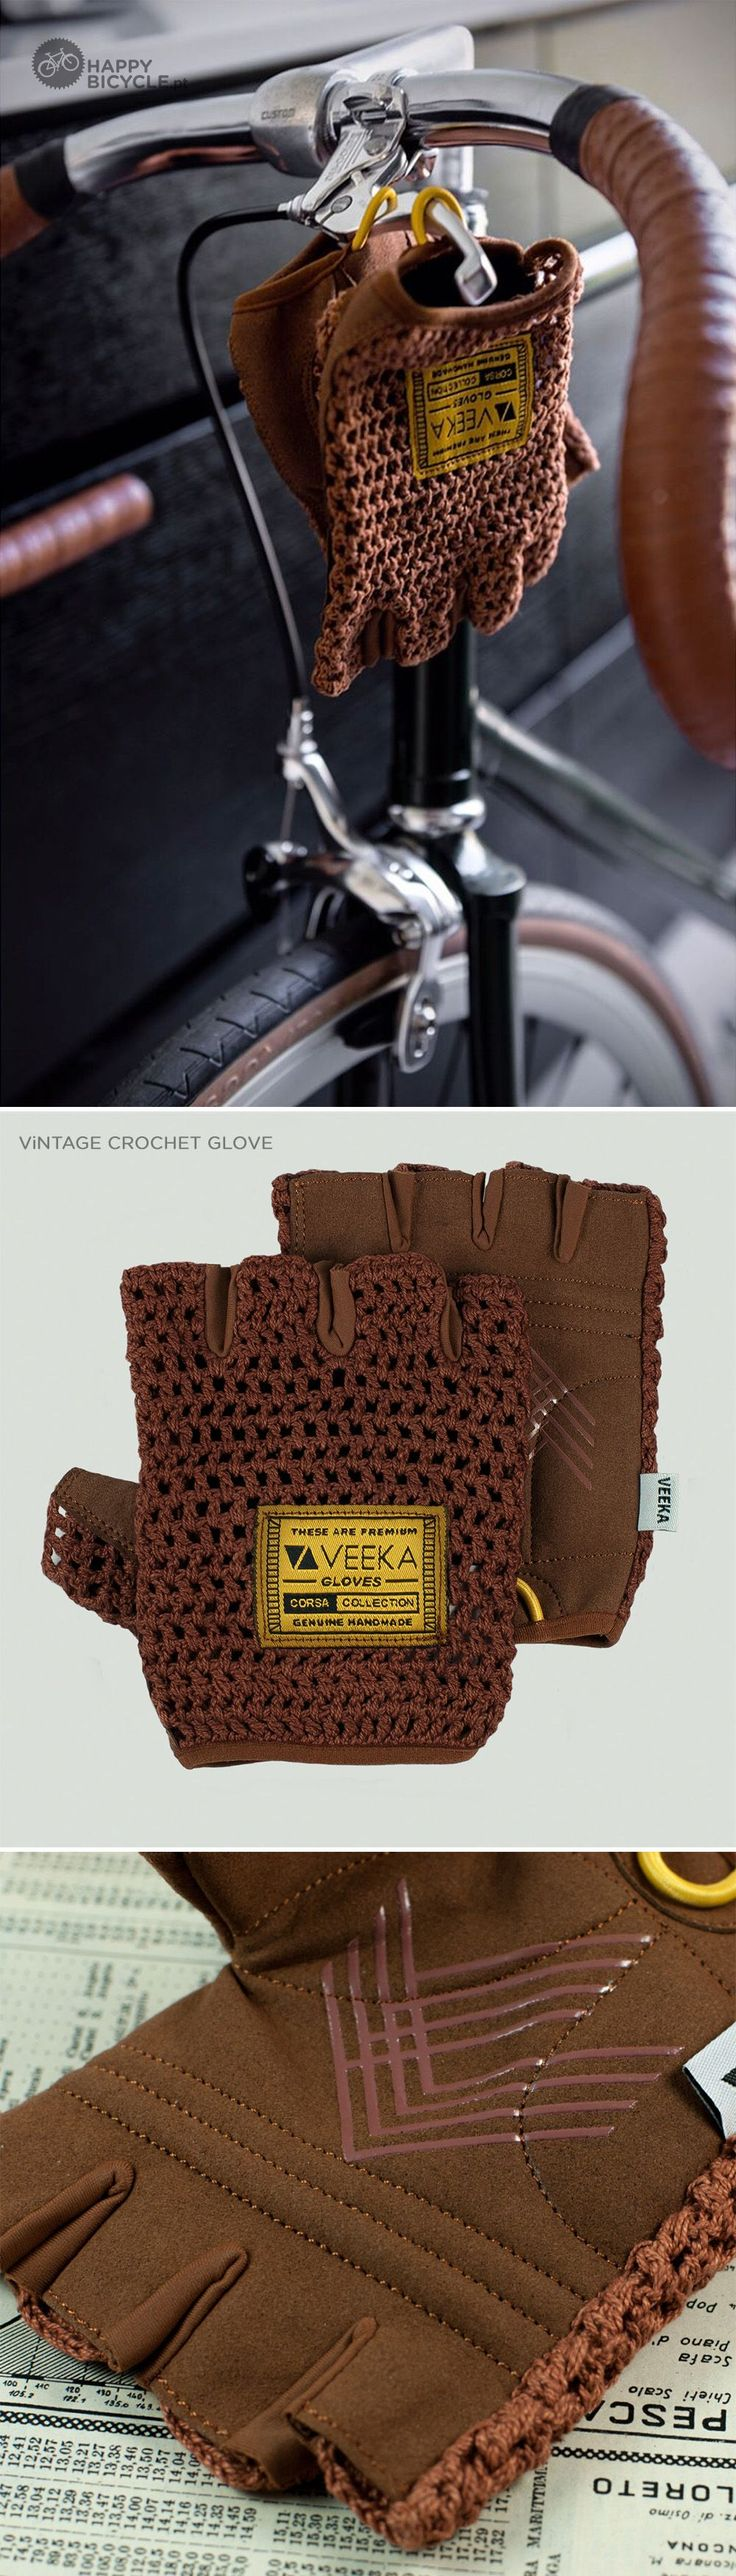 Ride it in Eroica's style :)  |  Vintage Bicycle Gloves  .  happybicycle.pt